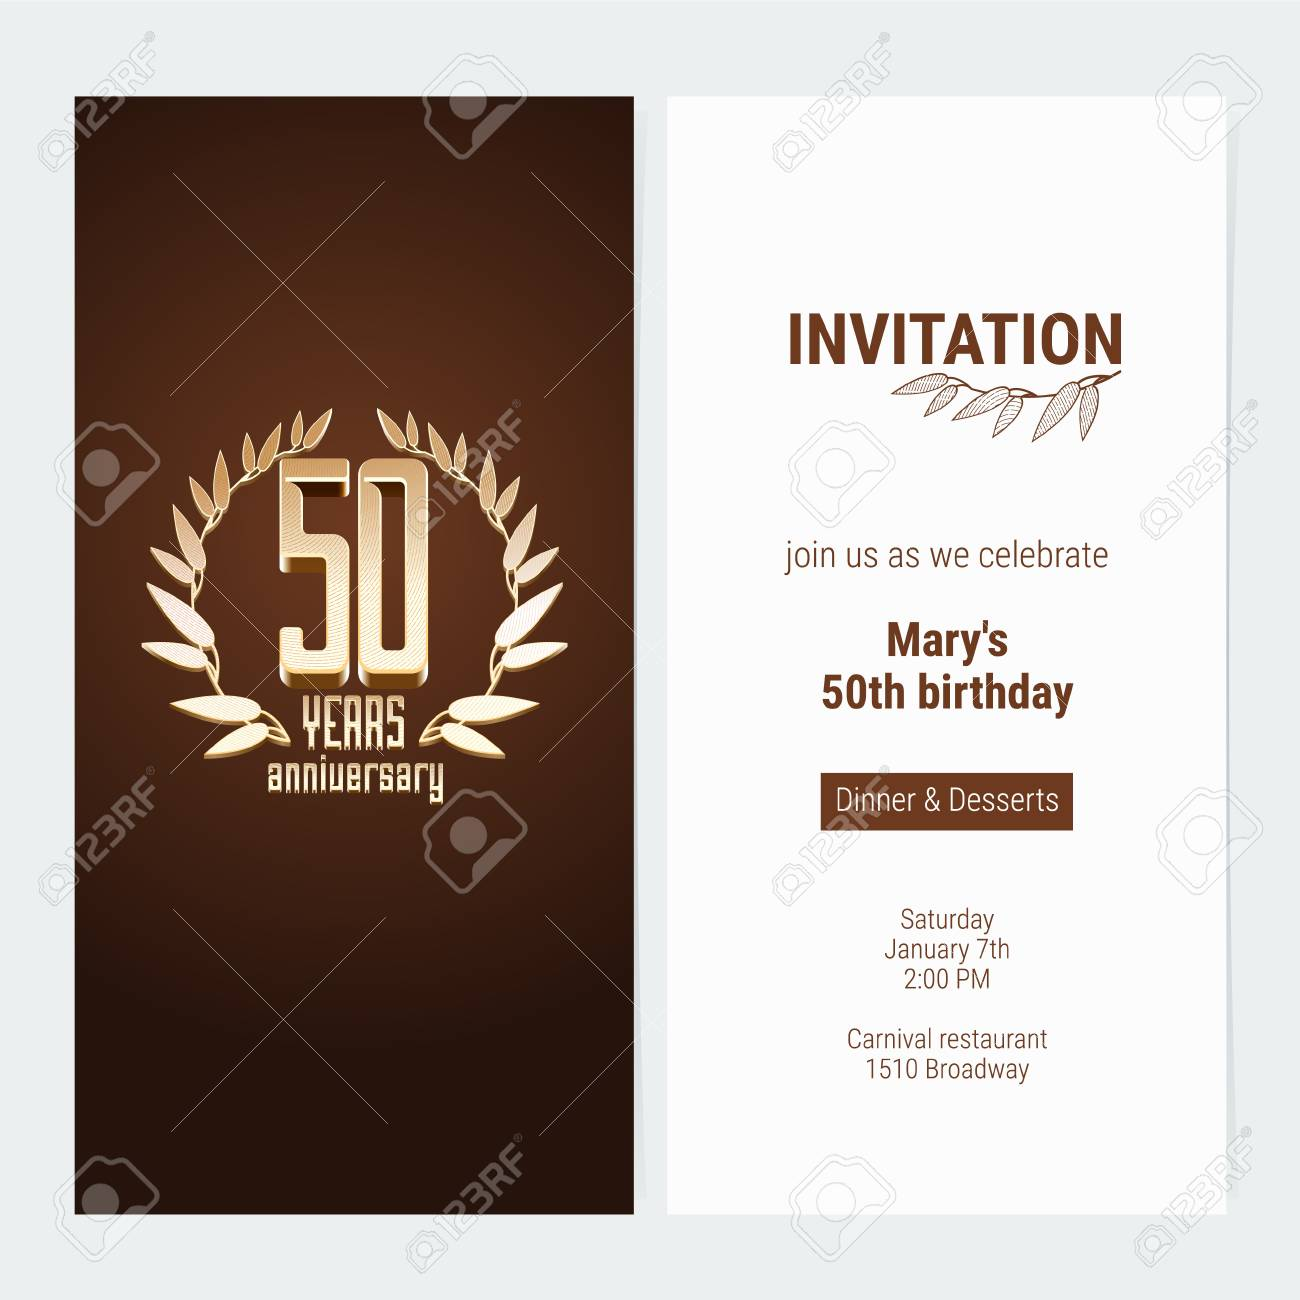 carte invitation 50 ans 50 Years Anniversary Invitation To Celebrate The Event Vector